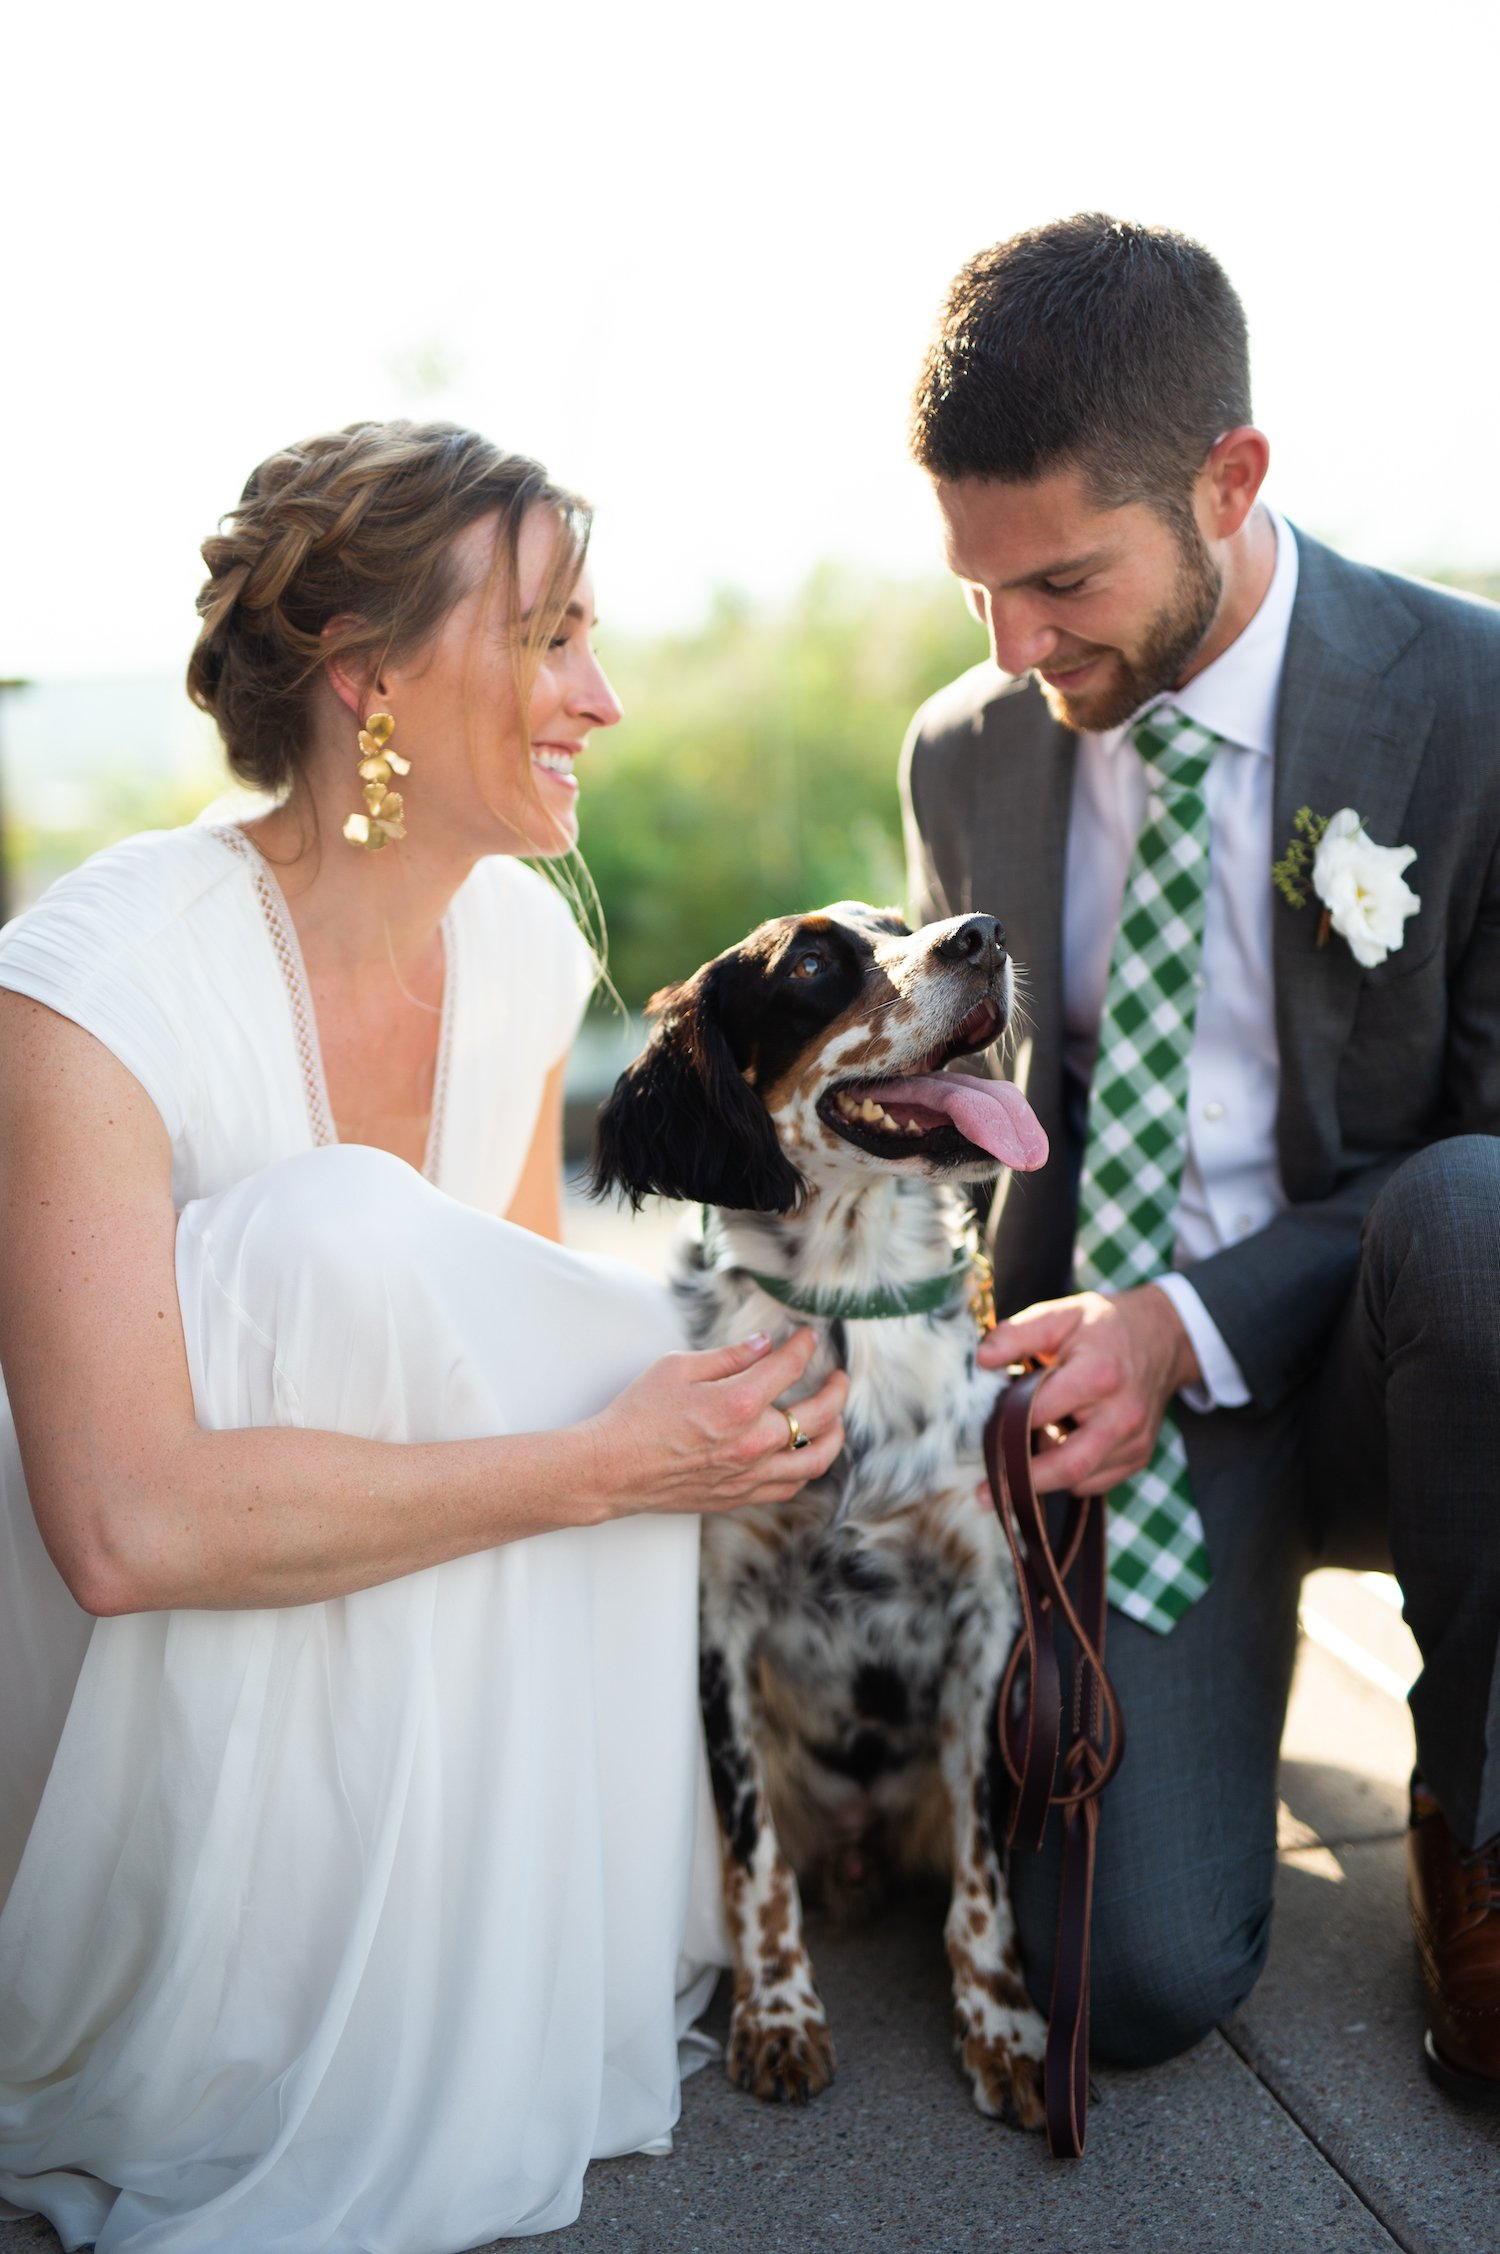 The-Line-DC-Fall-Wedding-Dog-Cake-Planner-Agriffin-events-00002